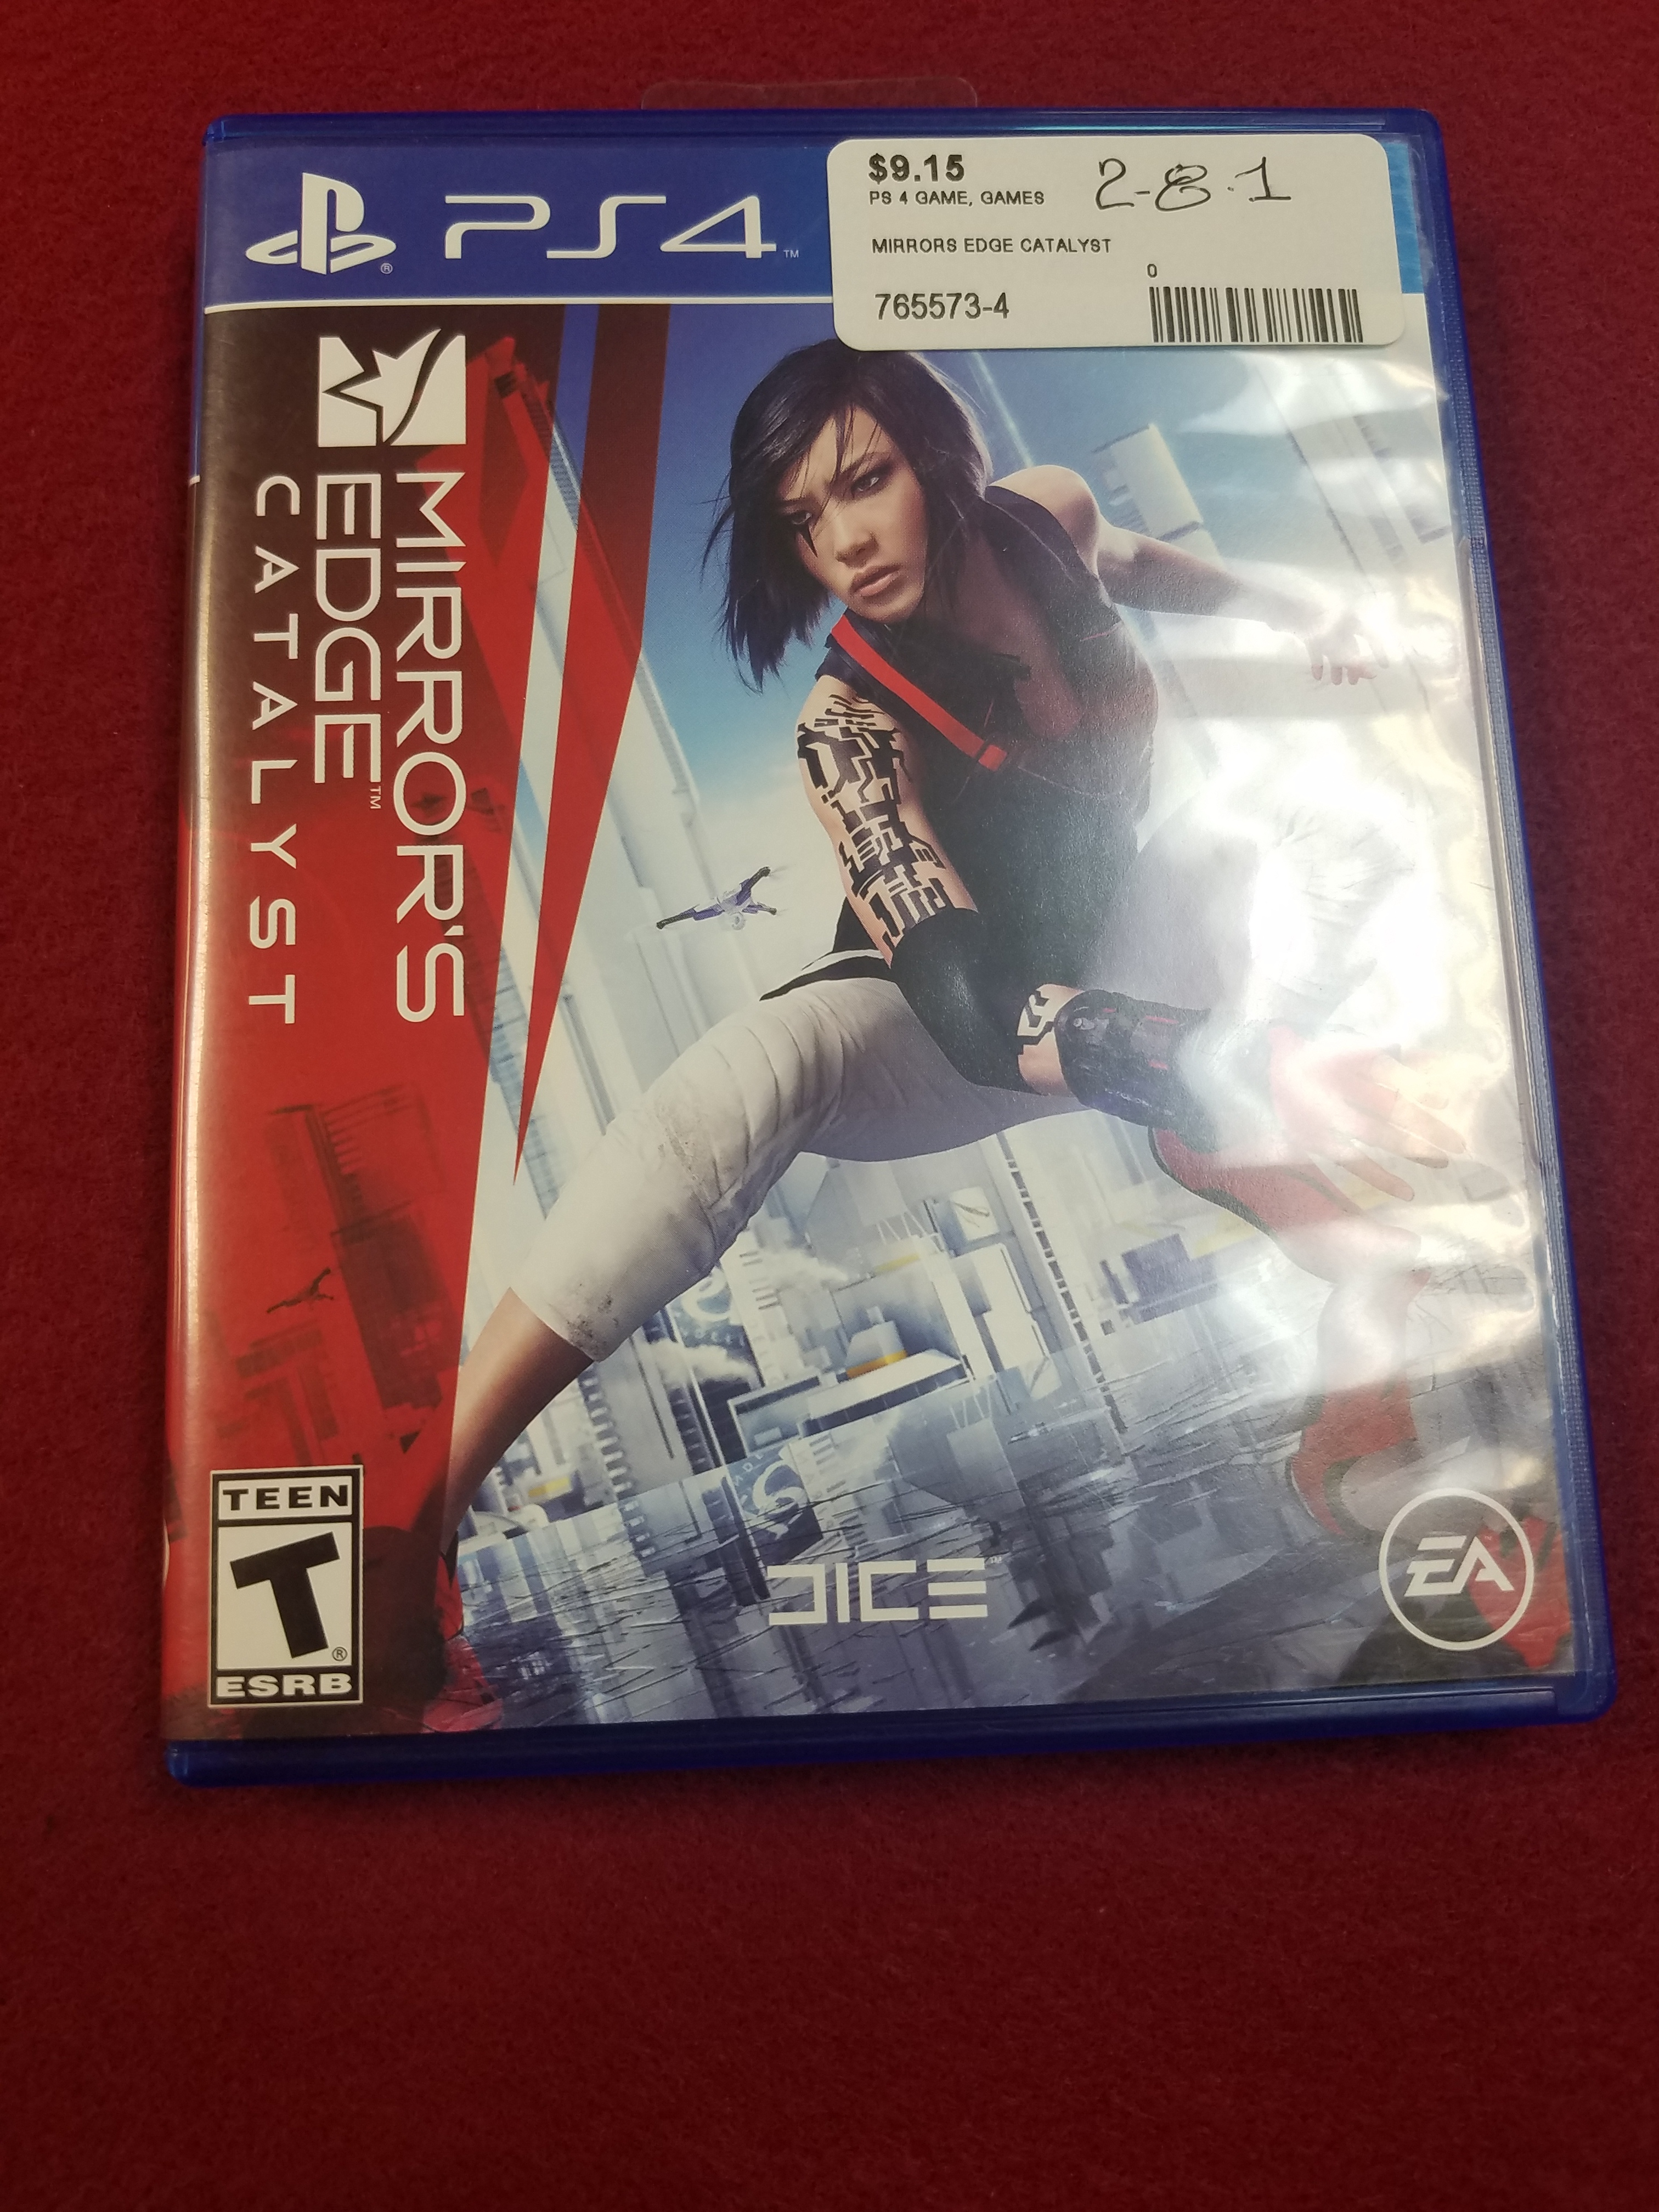 PS4 GAME - MIRRORS EDGE CATALYST